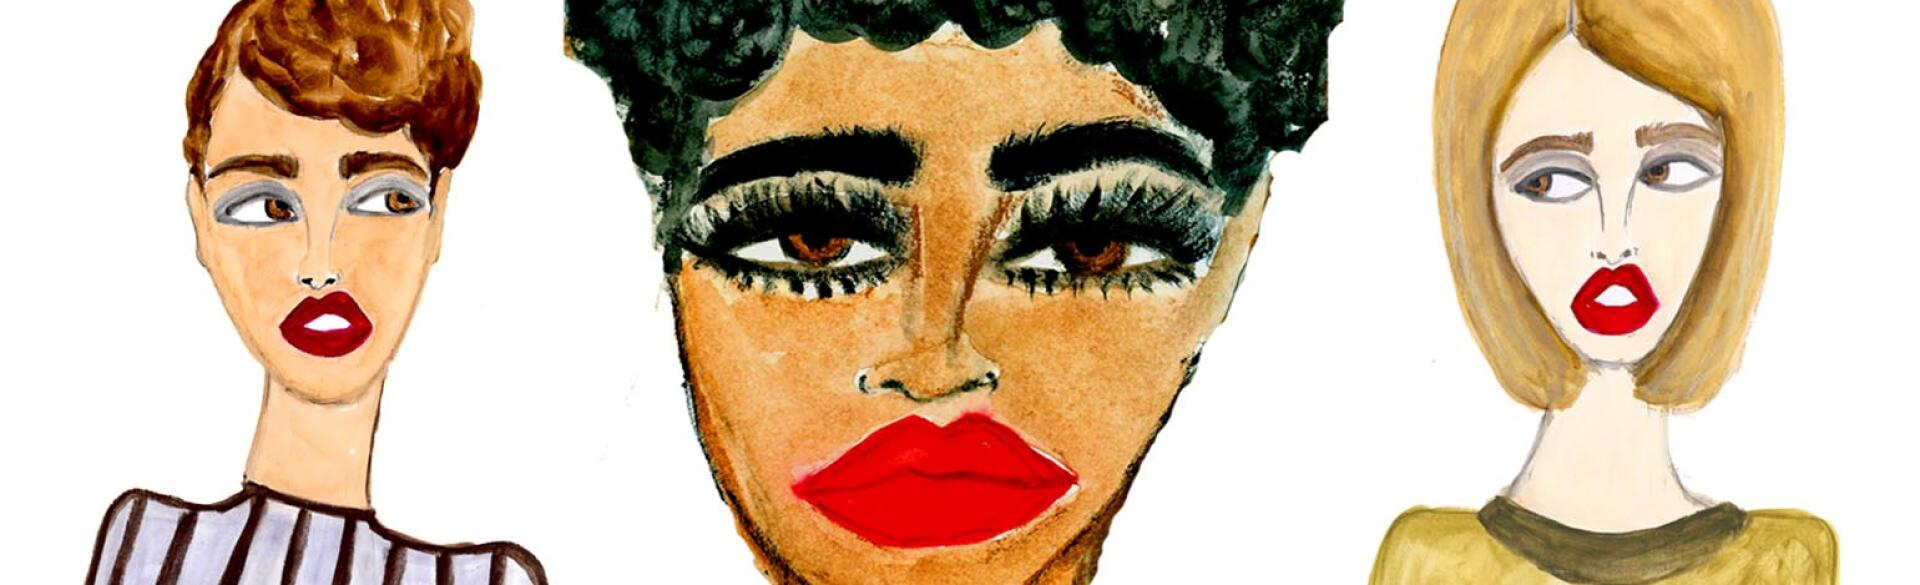 illustration of women with large eyelashes